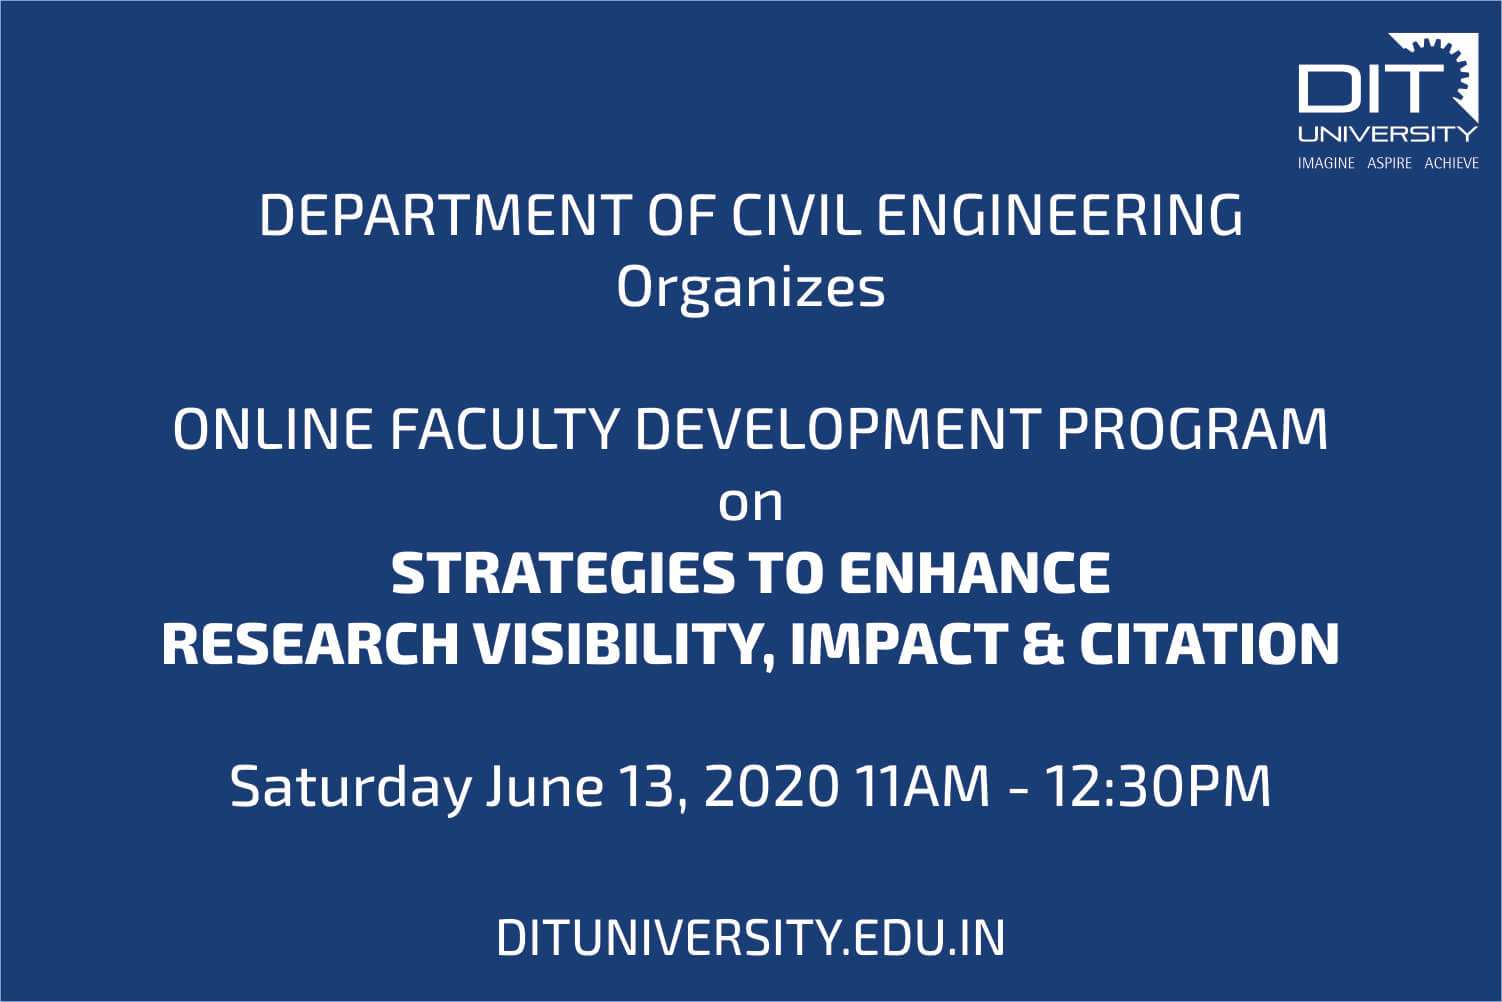 'Online Faculty Development Program' by Department of Civil Engineering